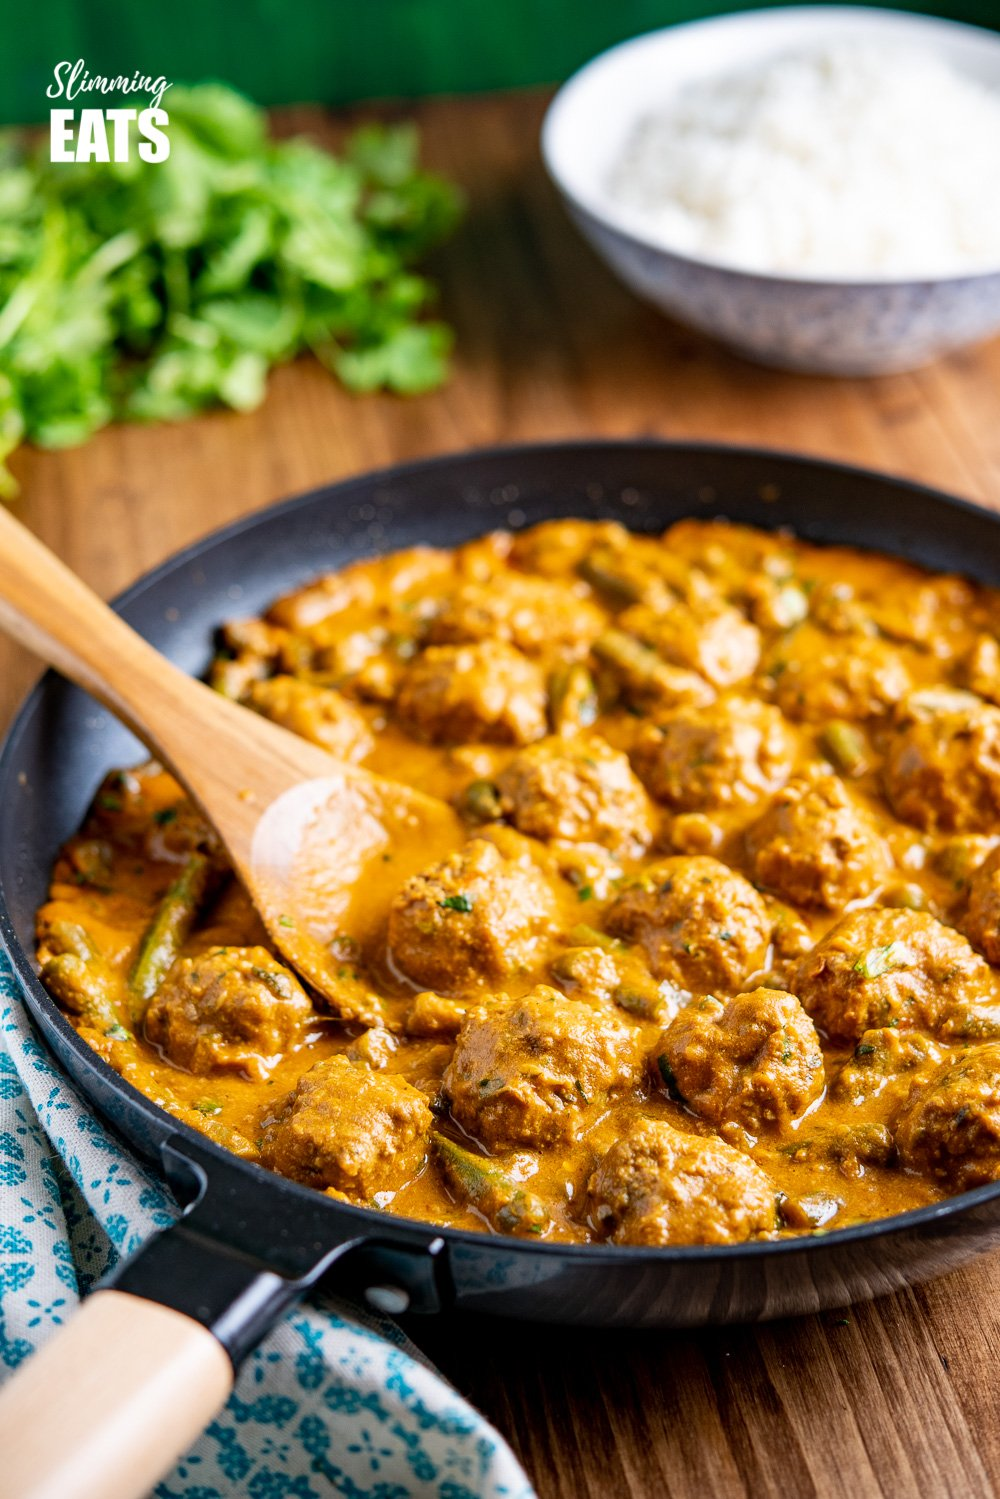 coconut beef meatball curry in black frying pan with wooden handle